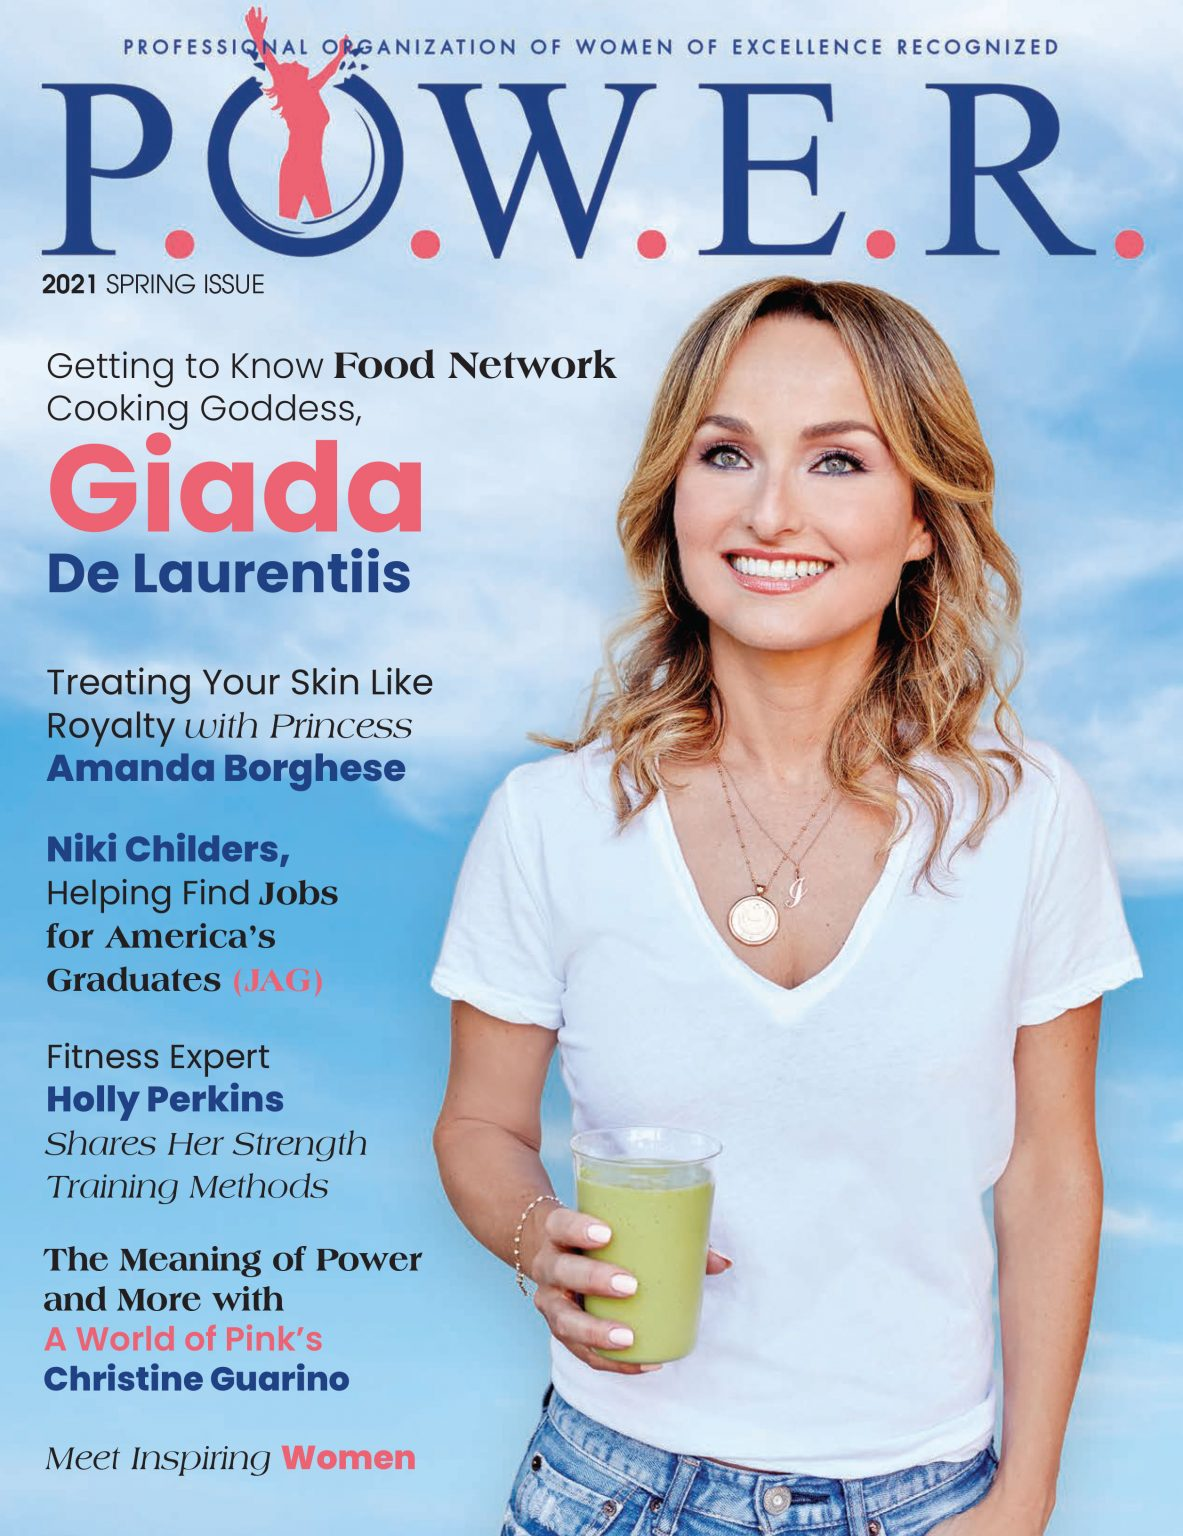 The Spring 2021 Issue of P.O.W.E.R. Magazine Showcases Women Who Have Followed Their Passions to Create Successful Careers